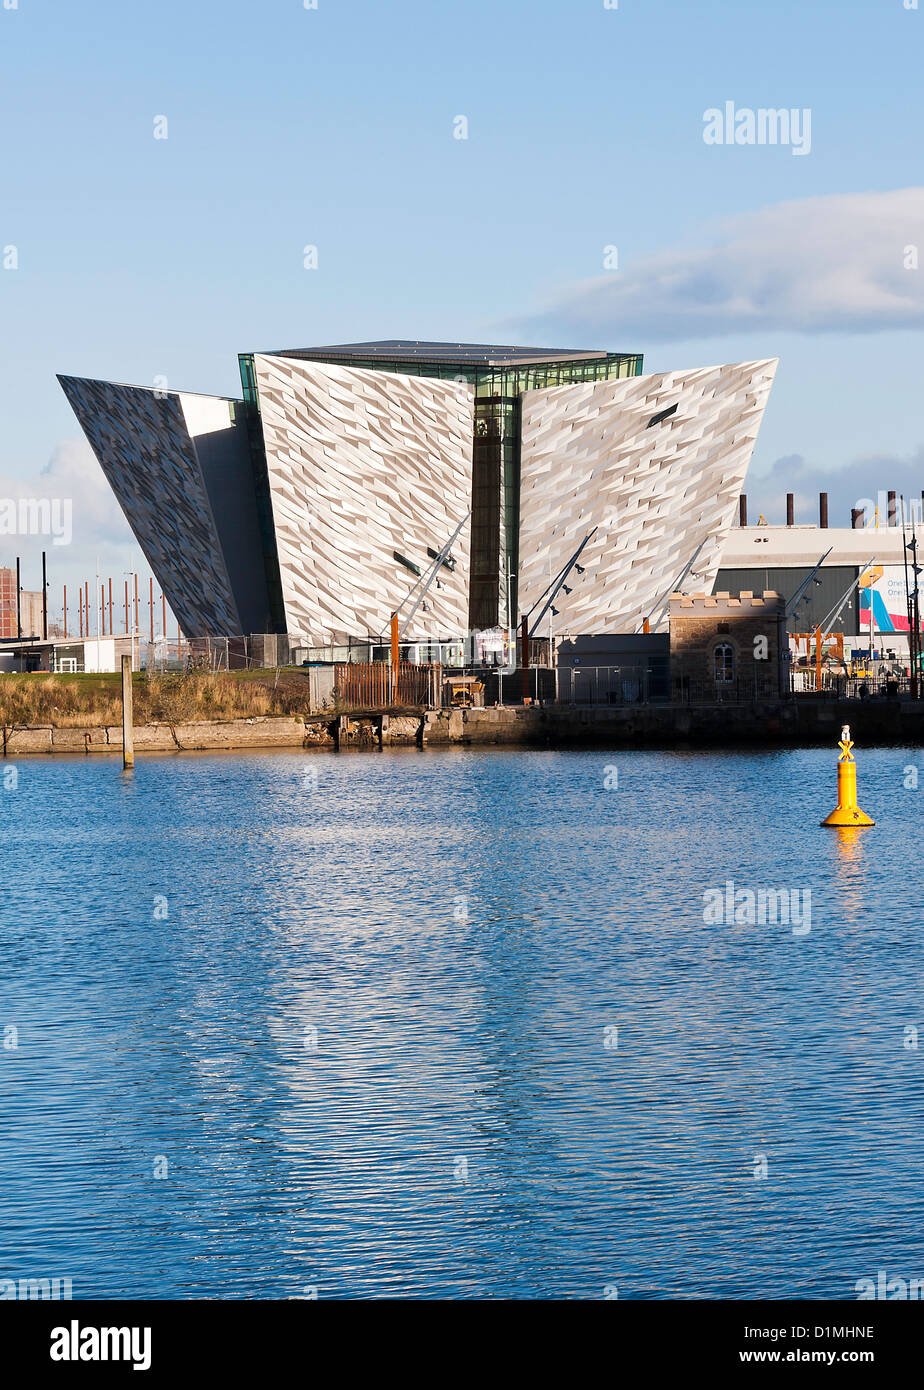 The Beautiful Exterior of the Titanic Museum in Titanic Quarter Near Harland and Wolff Shipyard Belfast Northern - Stock Image